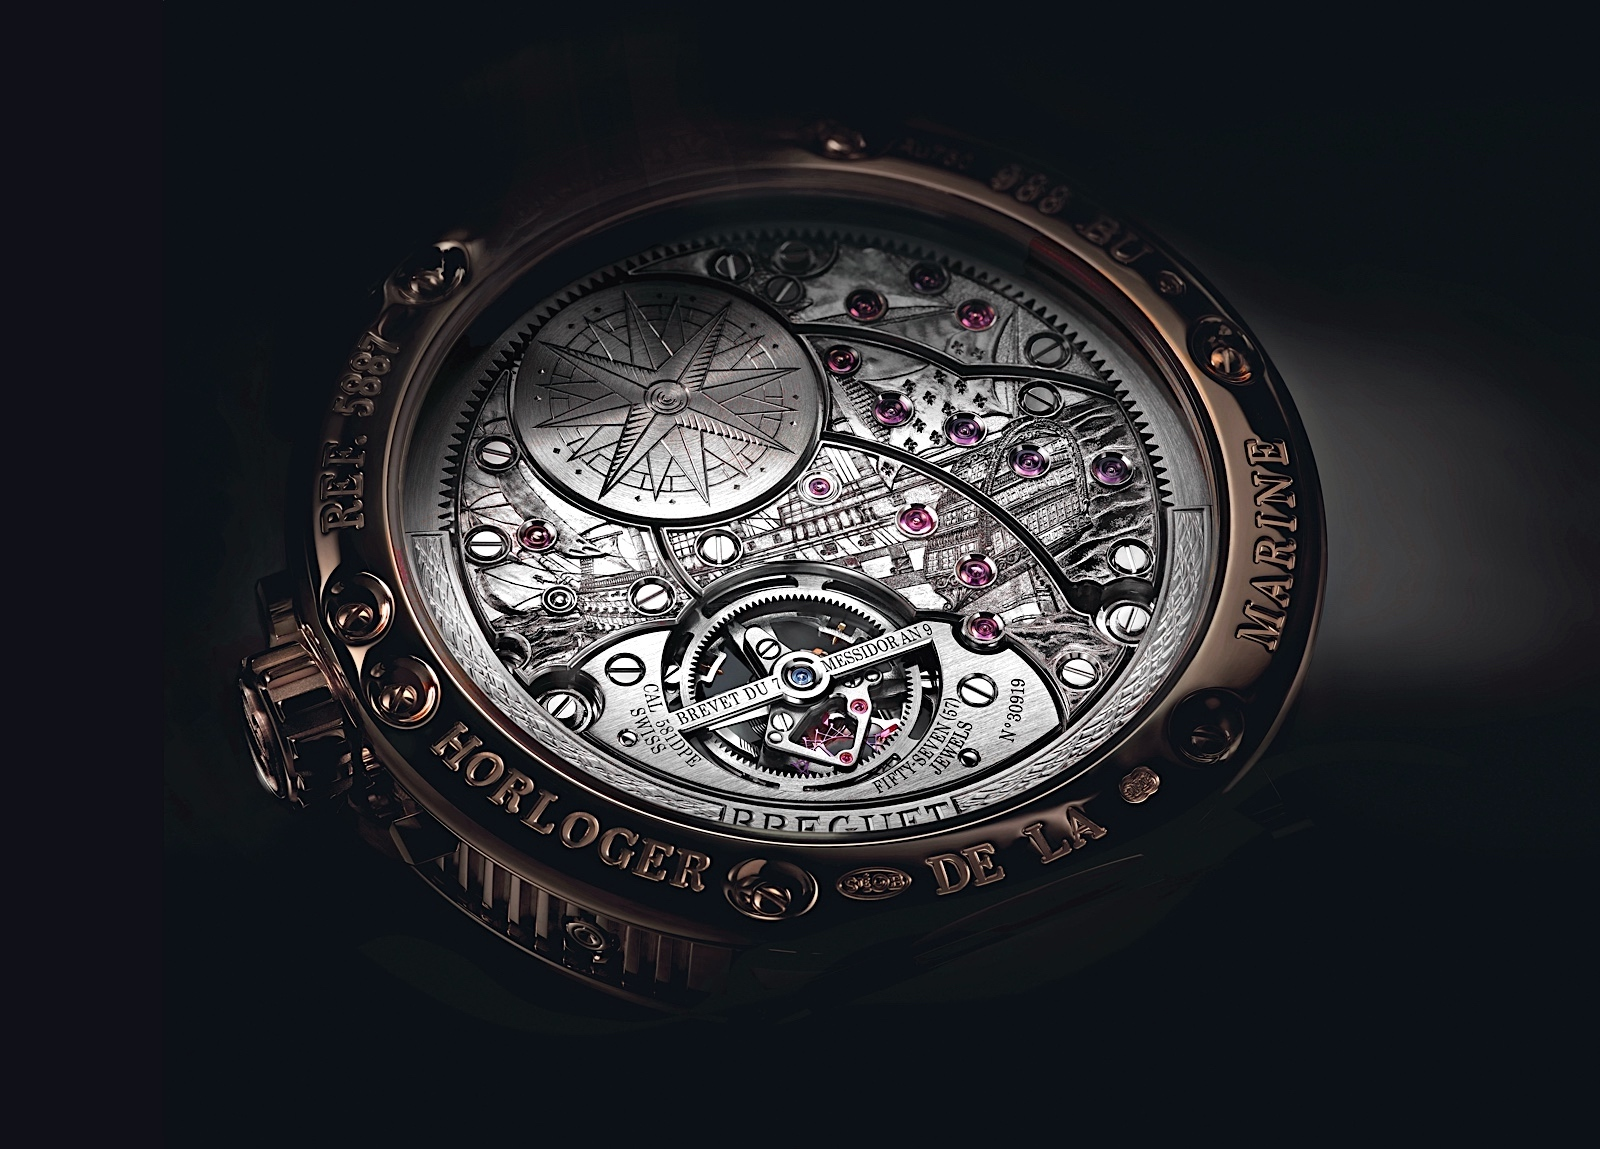 Breguet Marine Tourbillon Equation Marchante 5887 - back